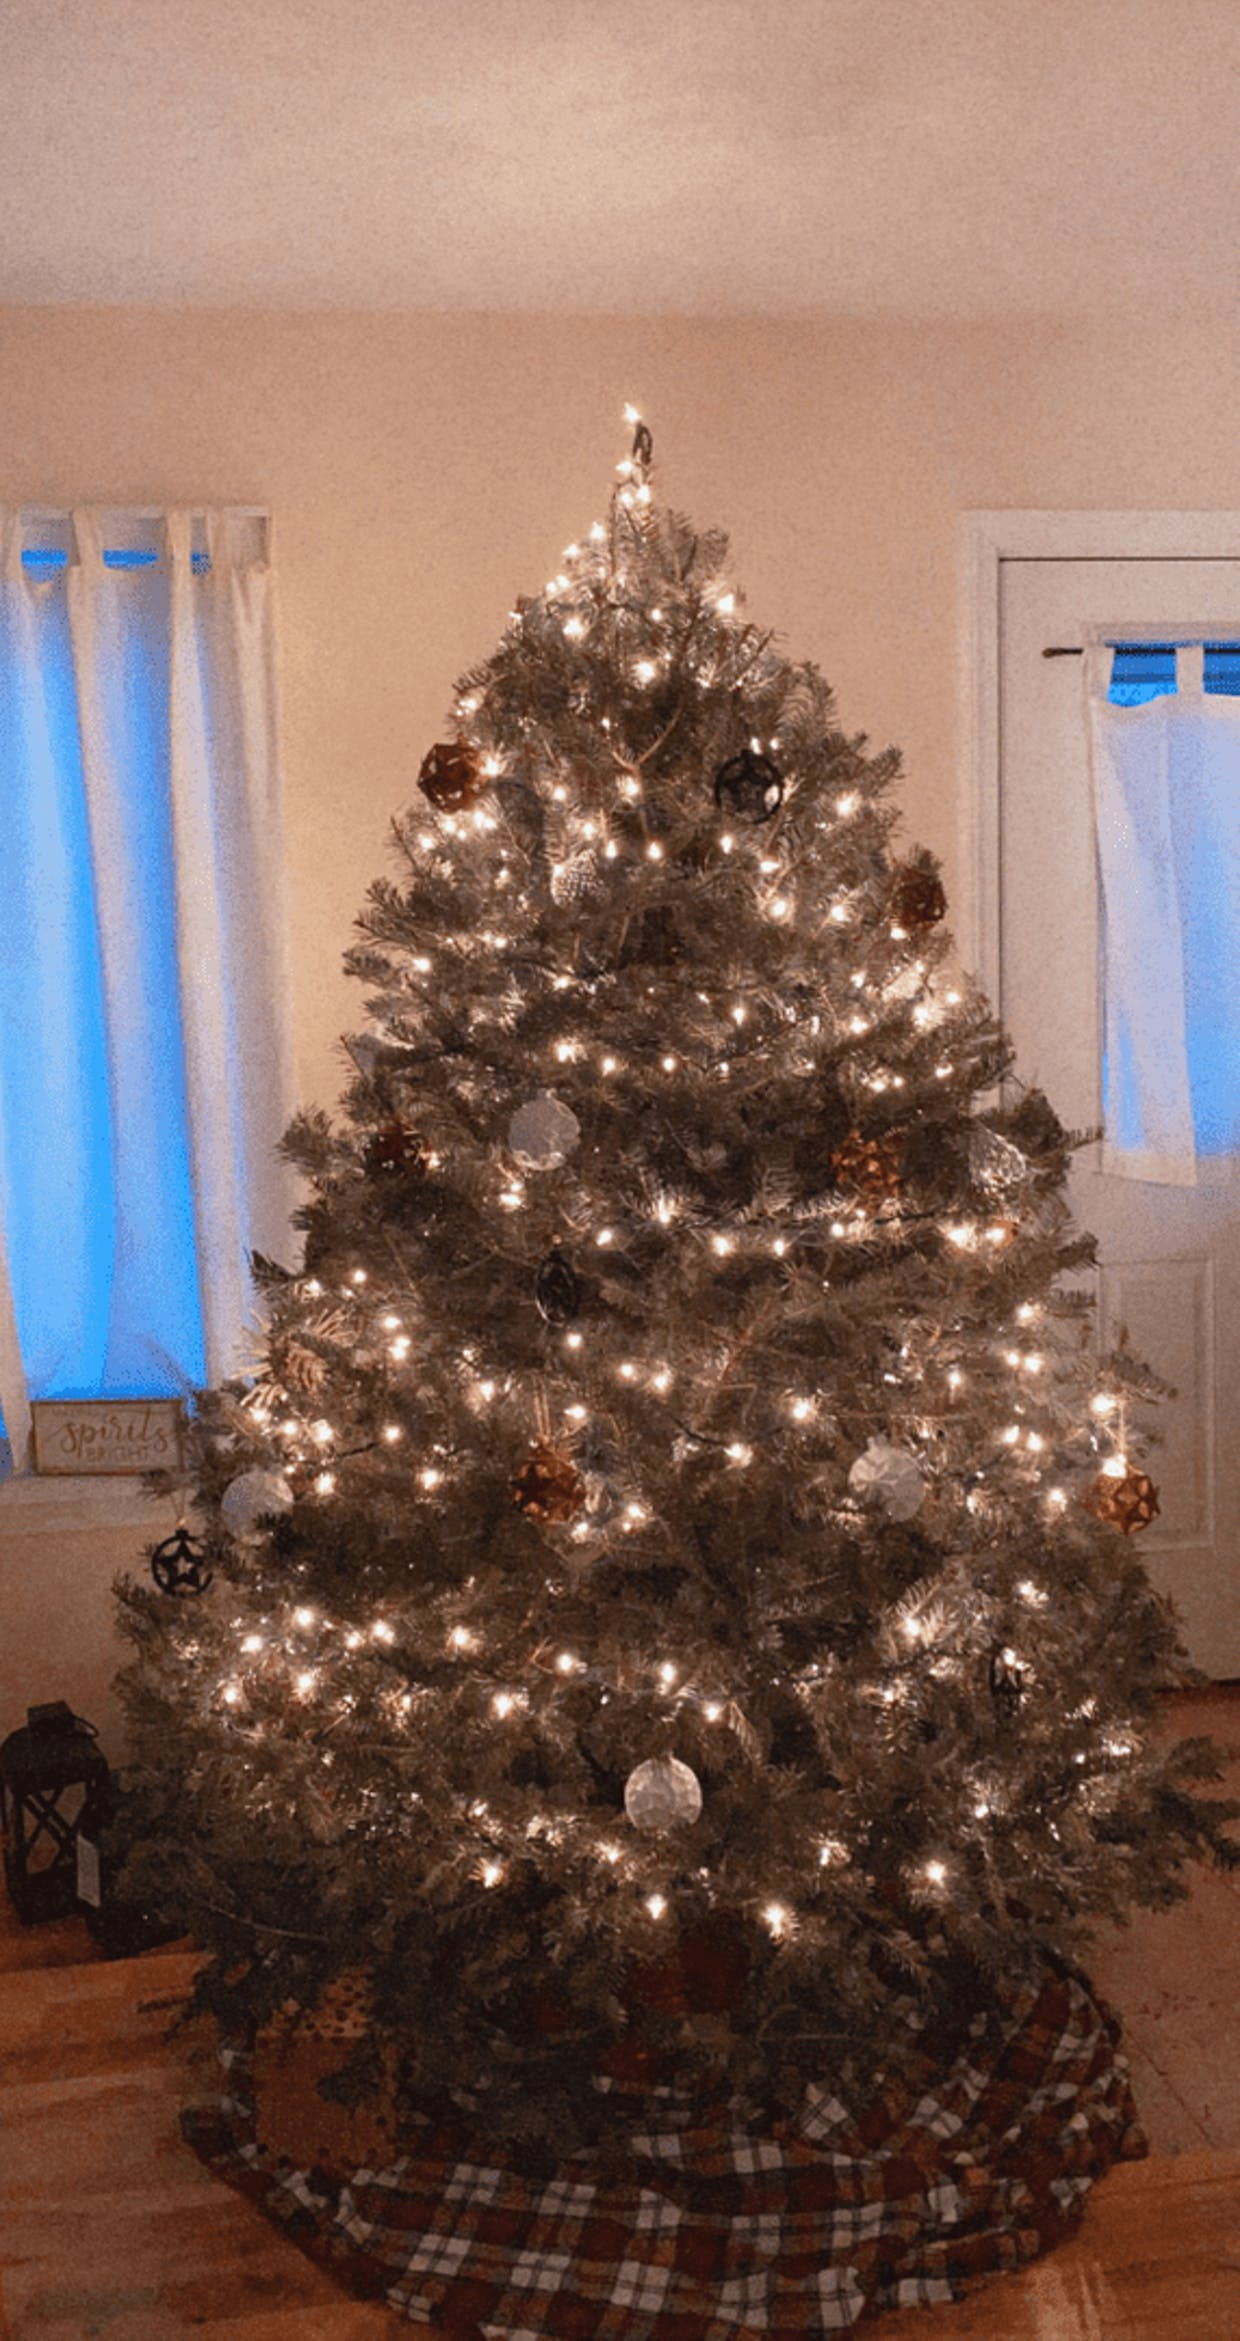 I normally spend a while picking out my tree and usually get a pretty perfect and even one. This year I think a lot of people decorated early to boost their cheer this year lol, so there wasn't much left at the farm when I went but this tree is a perfect 2020 tree. Its got some gaps and is a little warped and messy, but i kind of love it anyway. If It was perfect it wouldn't be right this year haha!